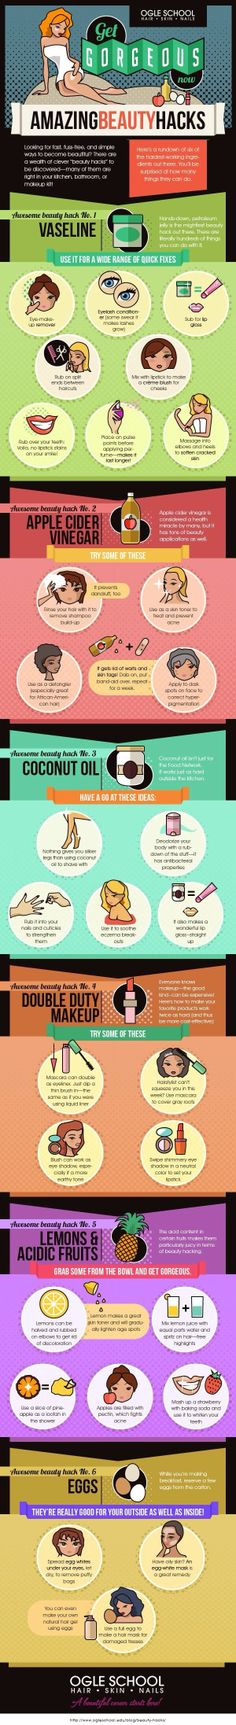 Must-know beauty tips infographic!